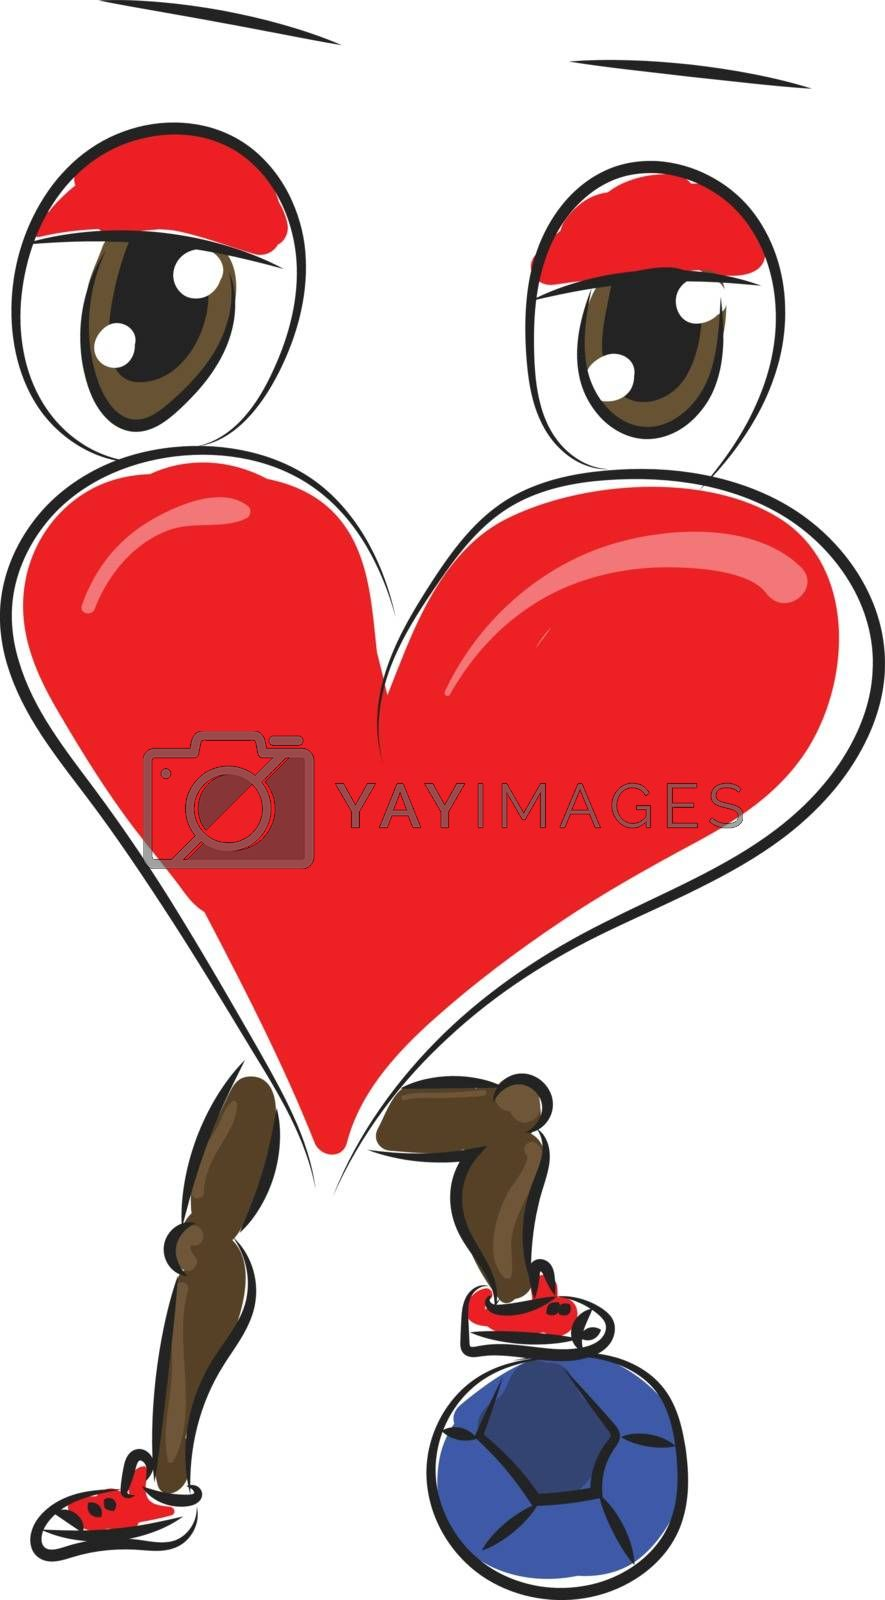 Royalty free image of A heart with eyes and legs has placed his foot on a football vec by Morphart